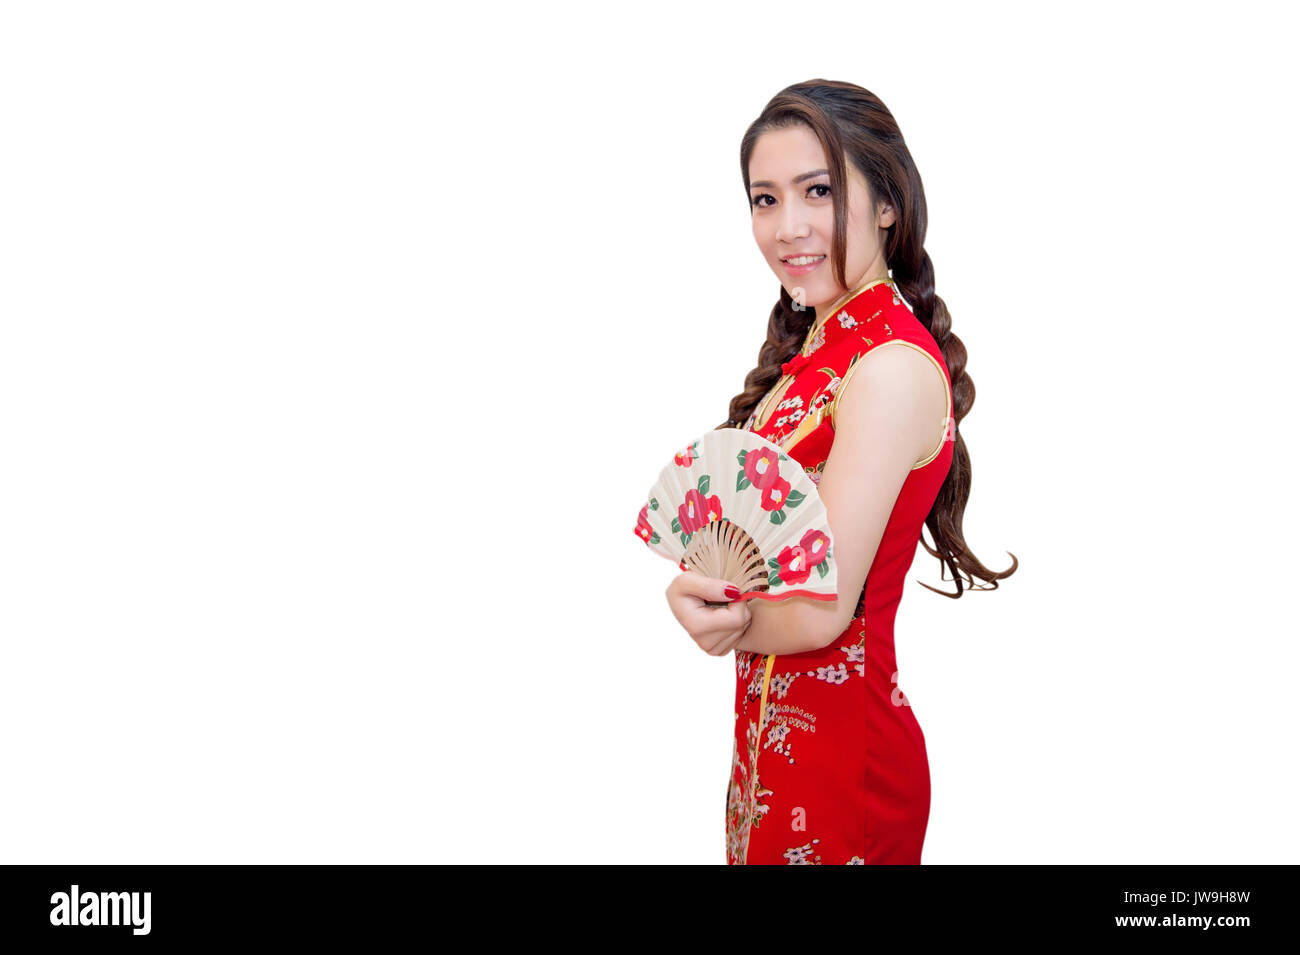 cb1463093 Beautiful young asian woman wearing Chinese traditional dress cheongsam or  qipao isolated on white background.